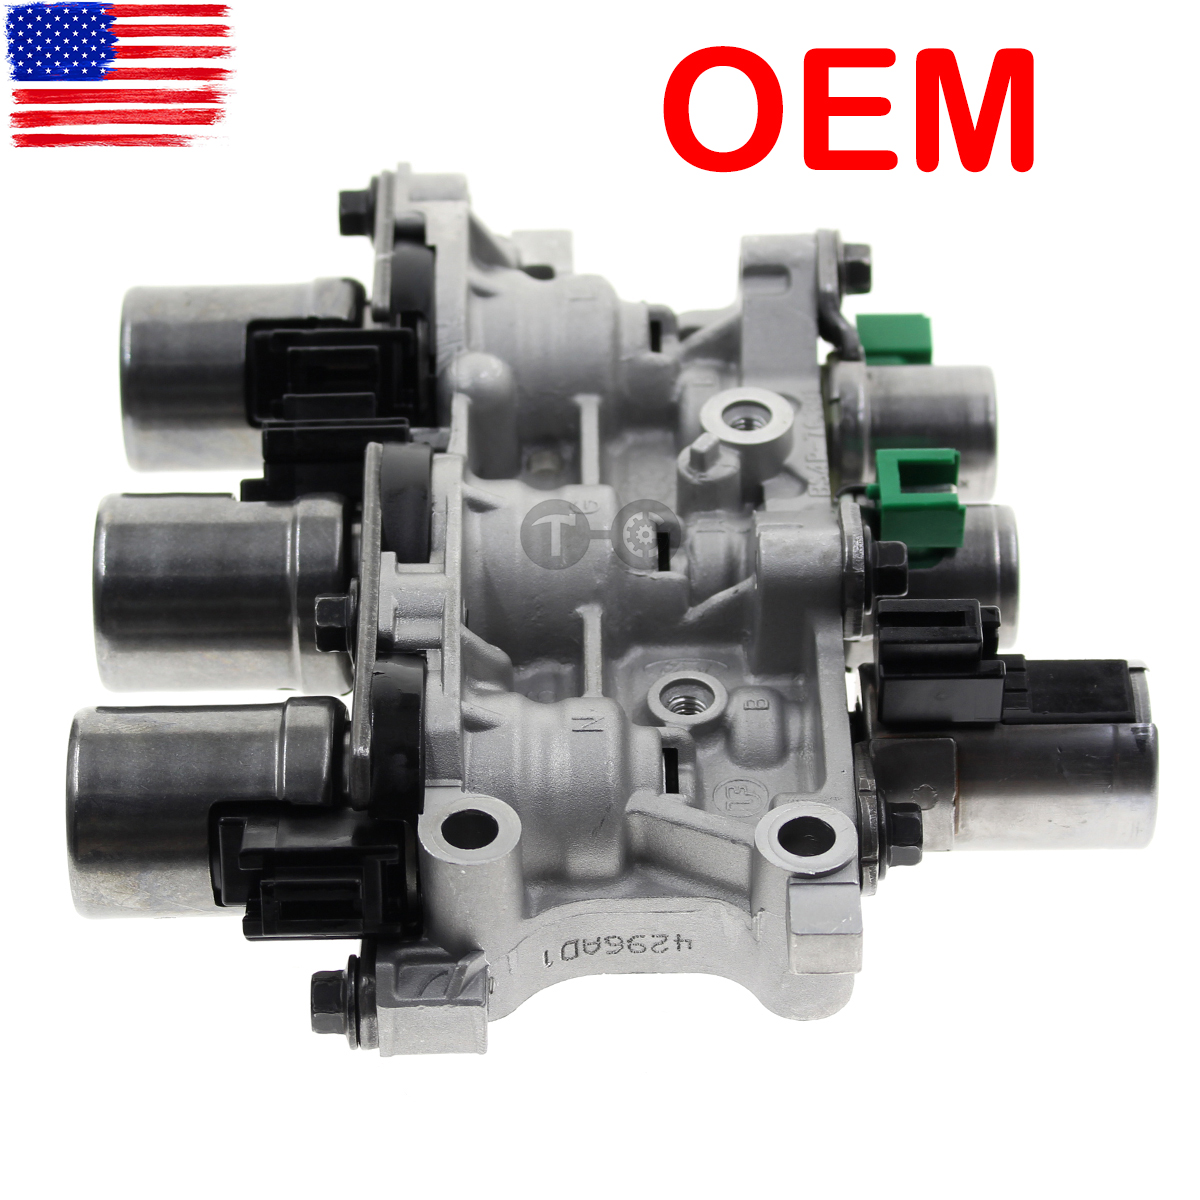 OEM Genuine 4F27-E Transmission Solenoid Block Pack for Ford Fiesta Focus  4Speed